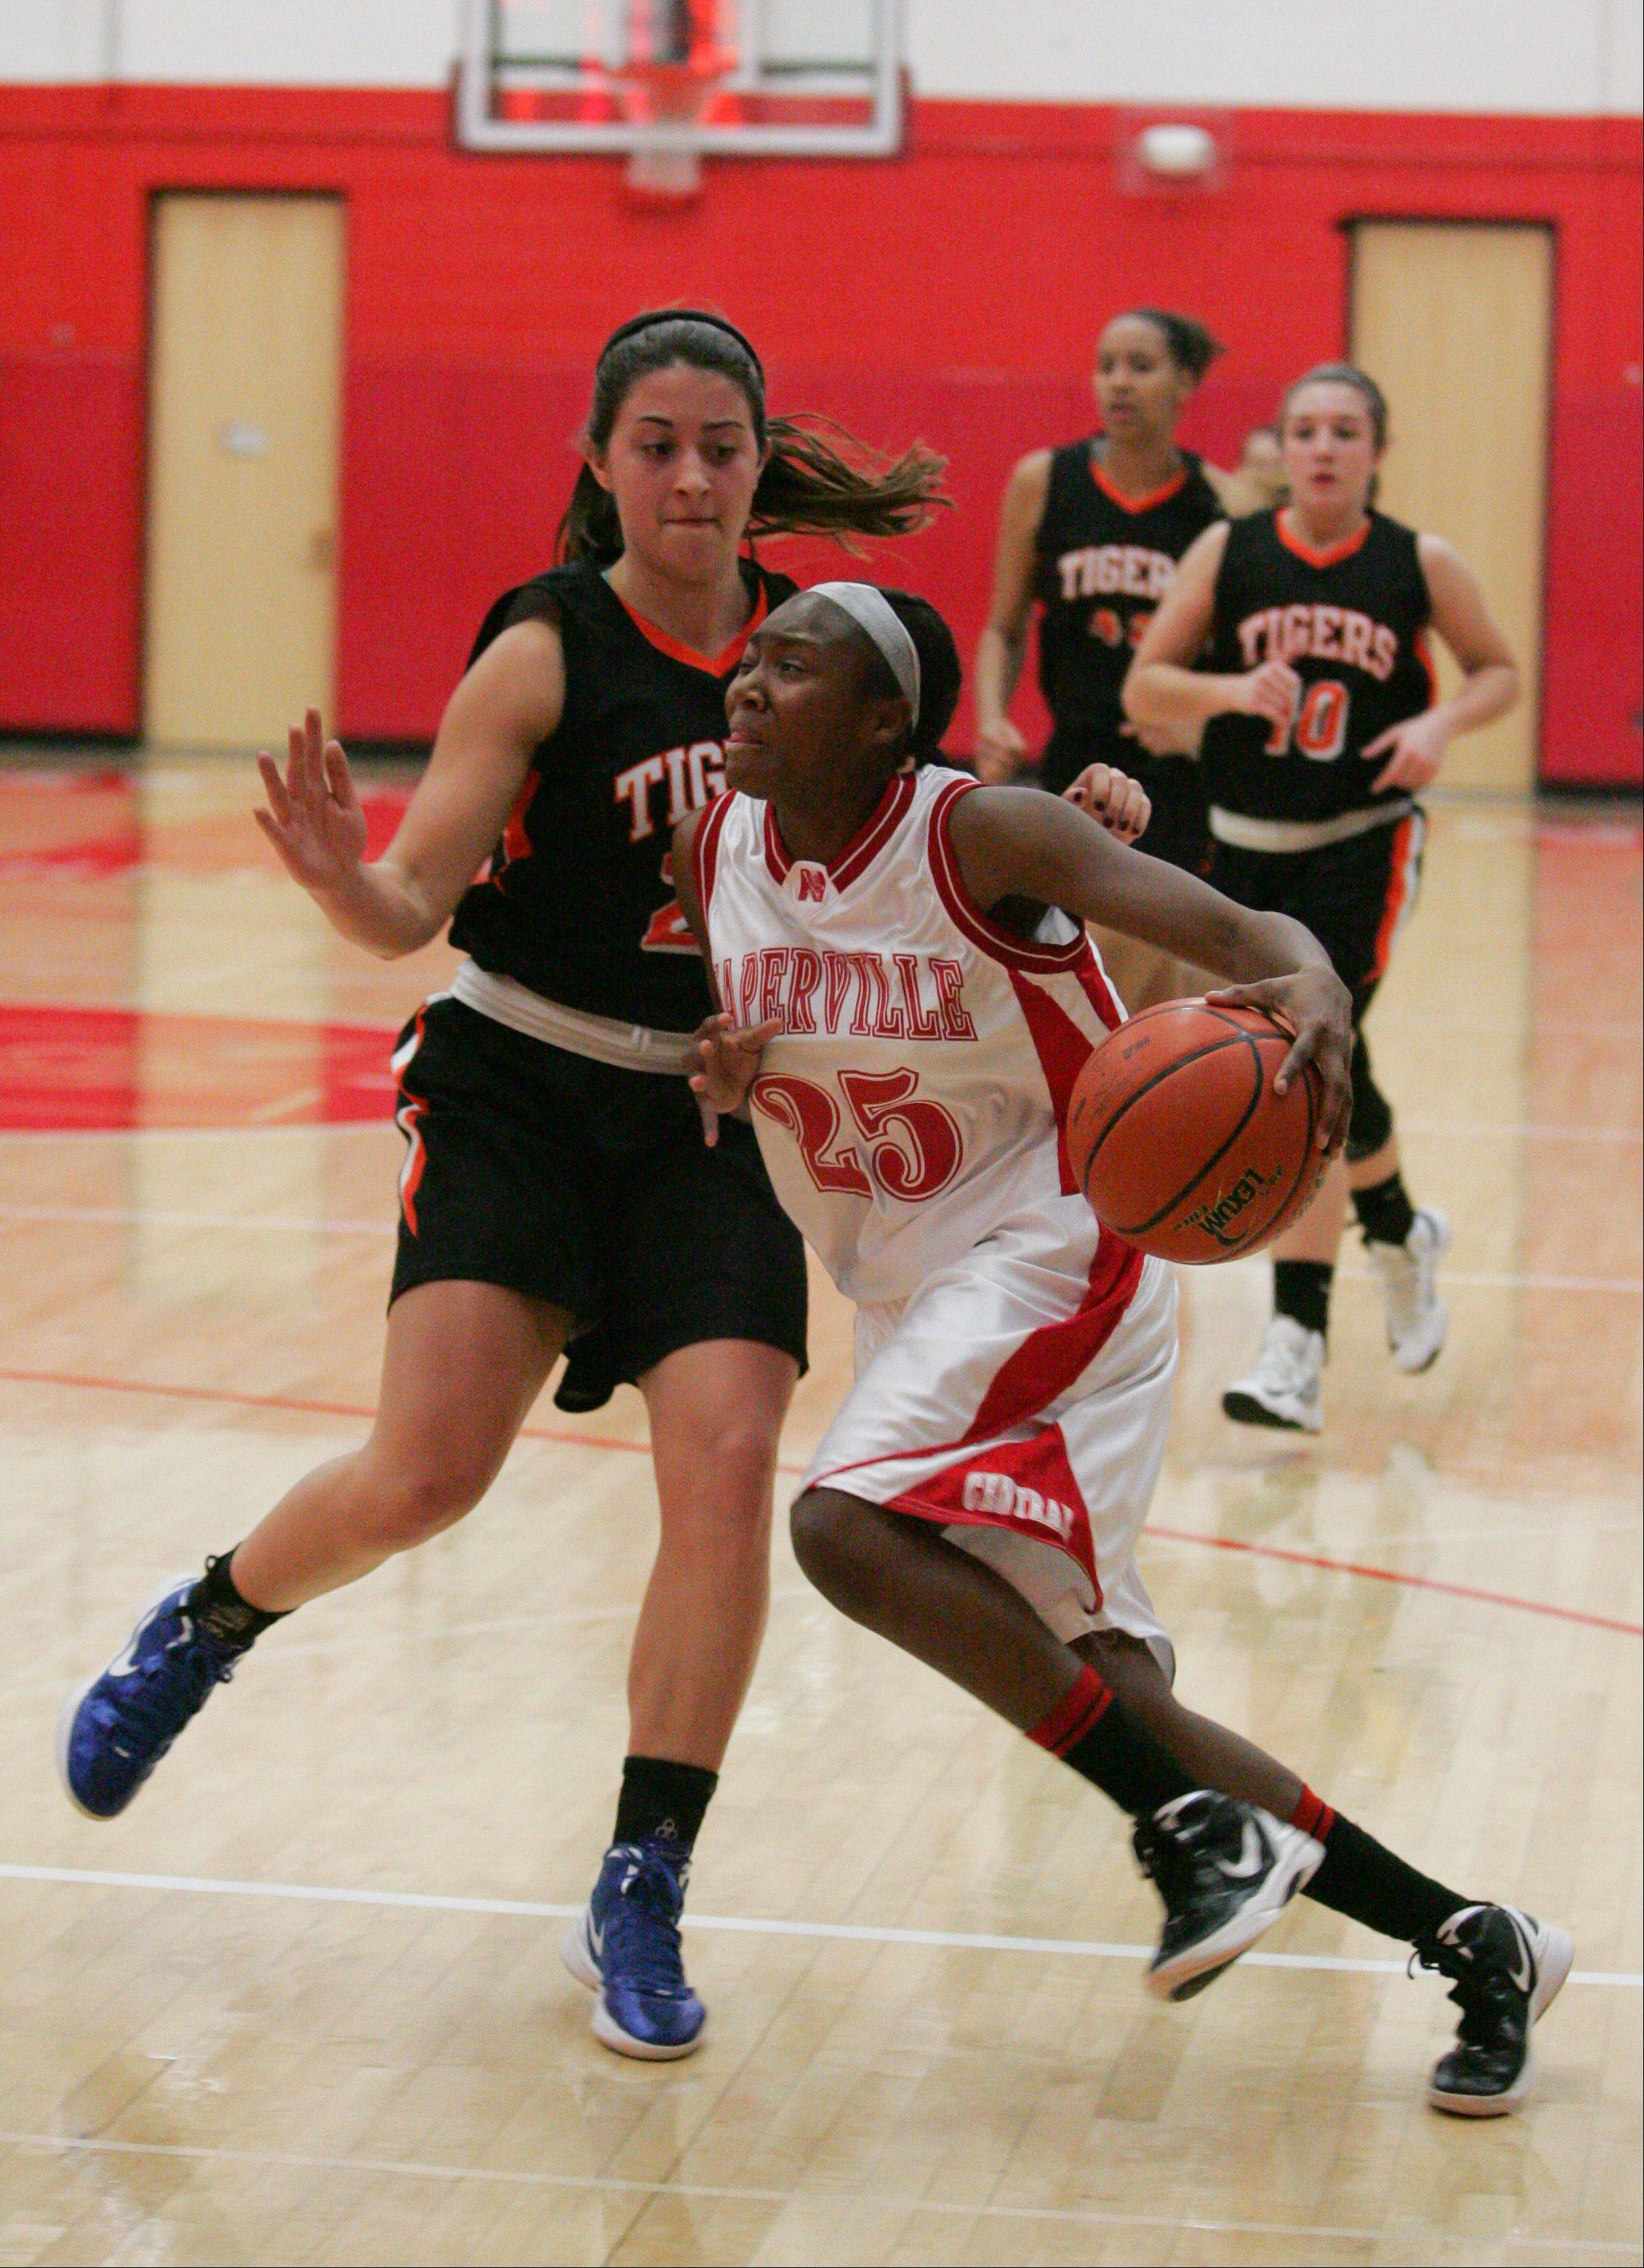 Naperville Central High School hosted Wheaton Warrenville South High School Tuesday night for girls basketball.